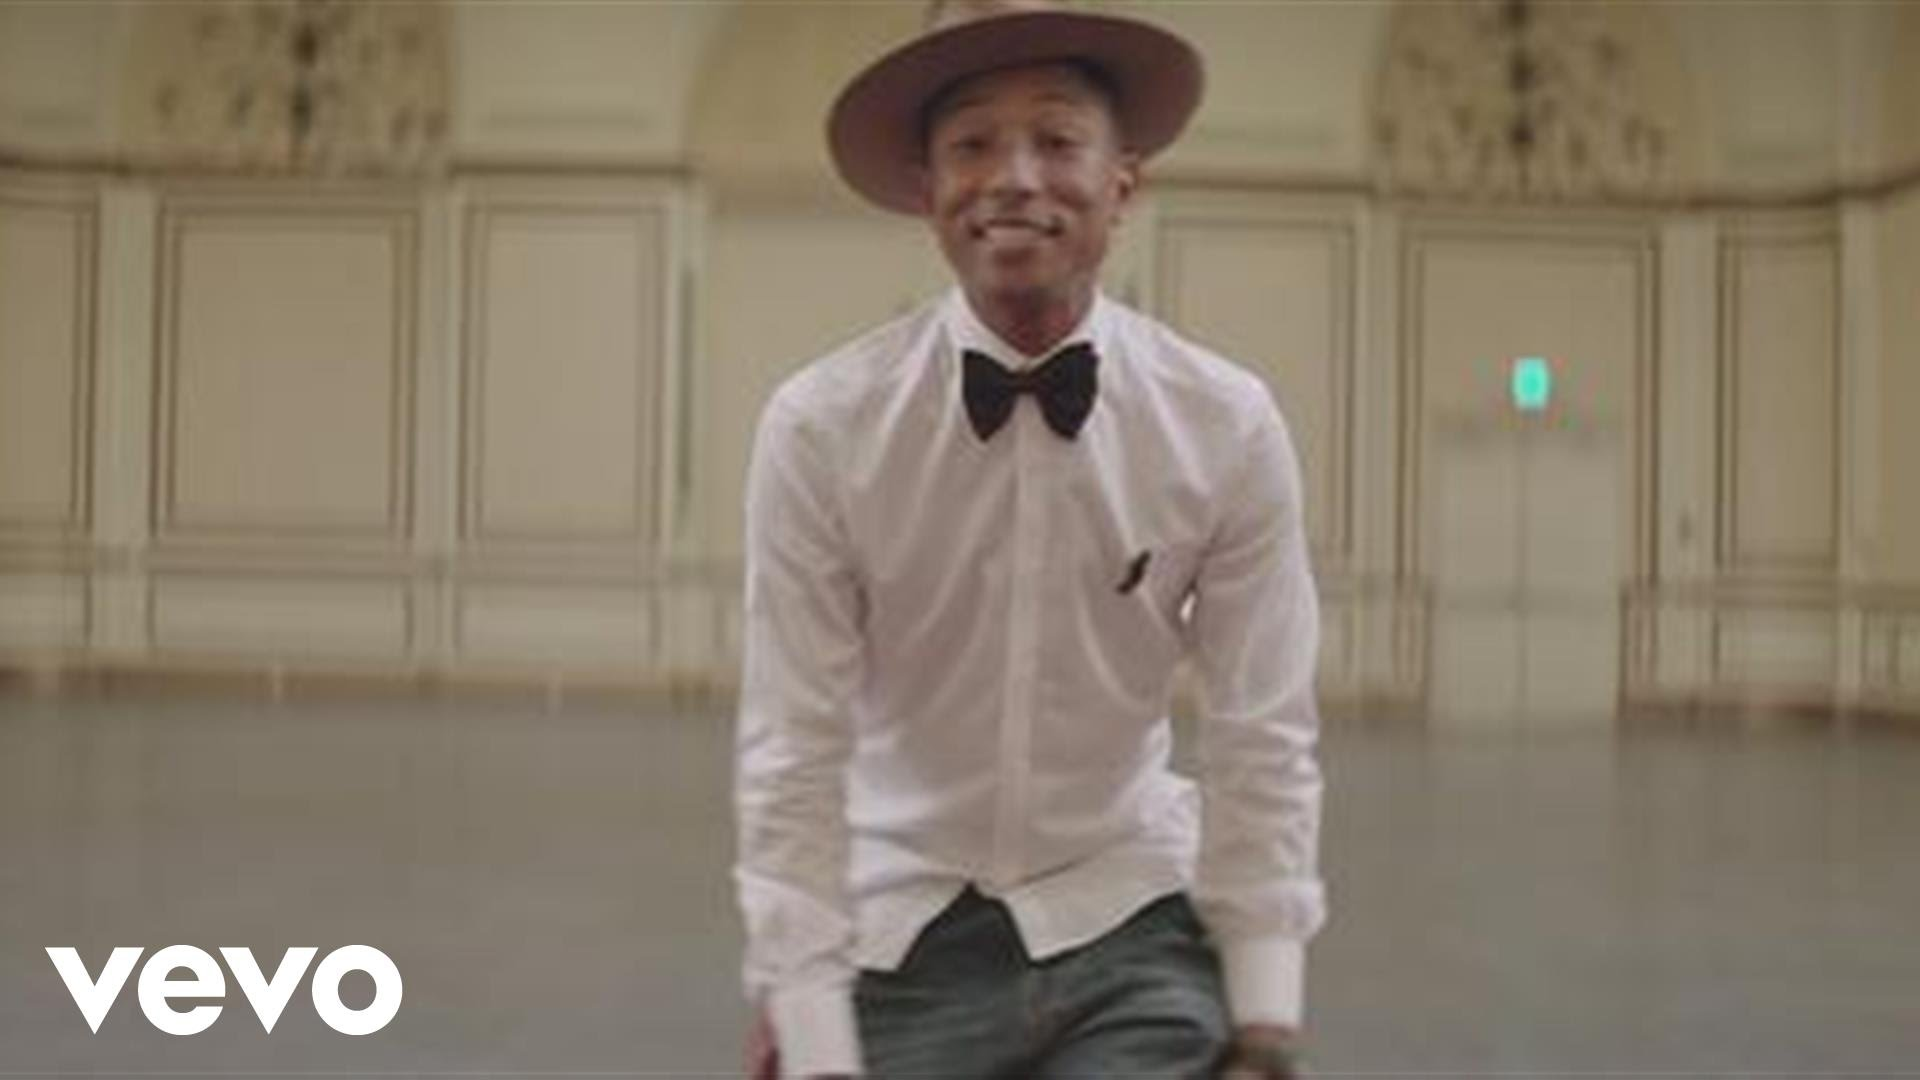 Pharrell preparing to make a horror movie called 'Survive the Night'